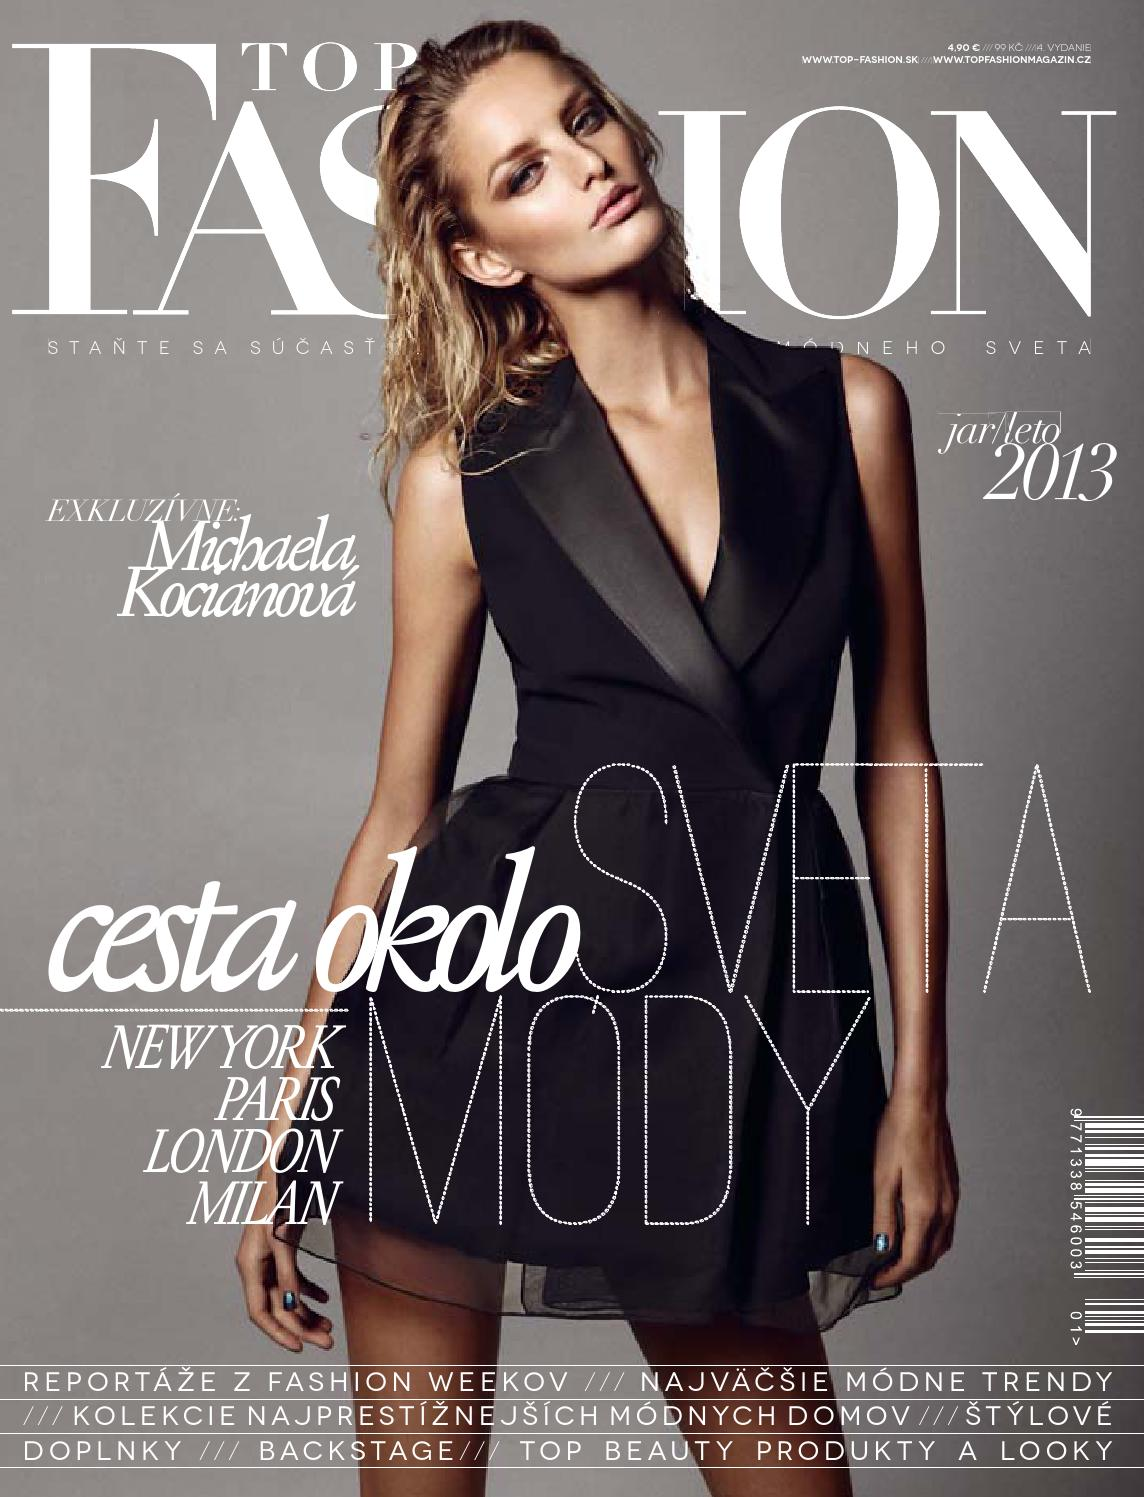 6862751f3 Top Fashion - vip by Mediast Slovakia - issuu